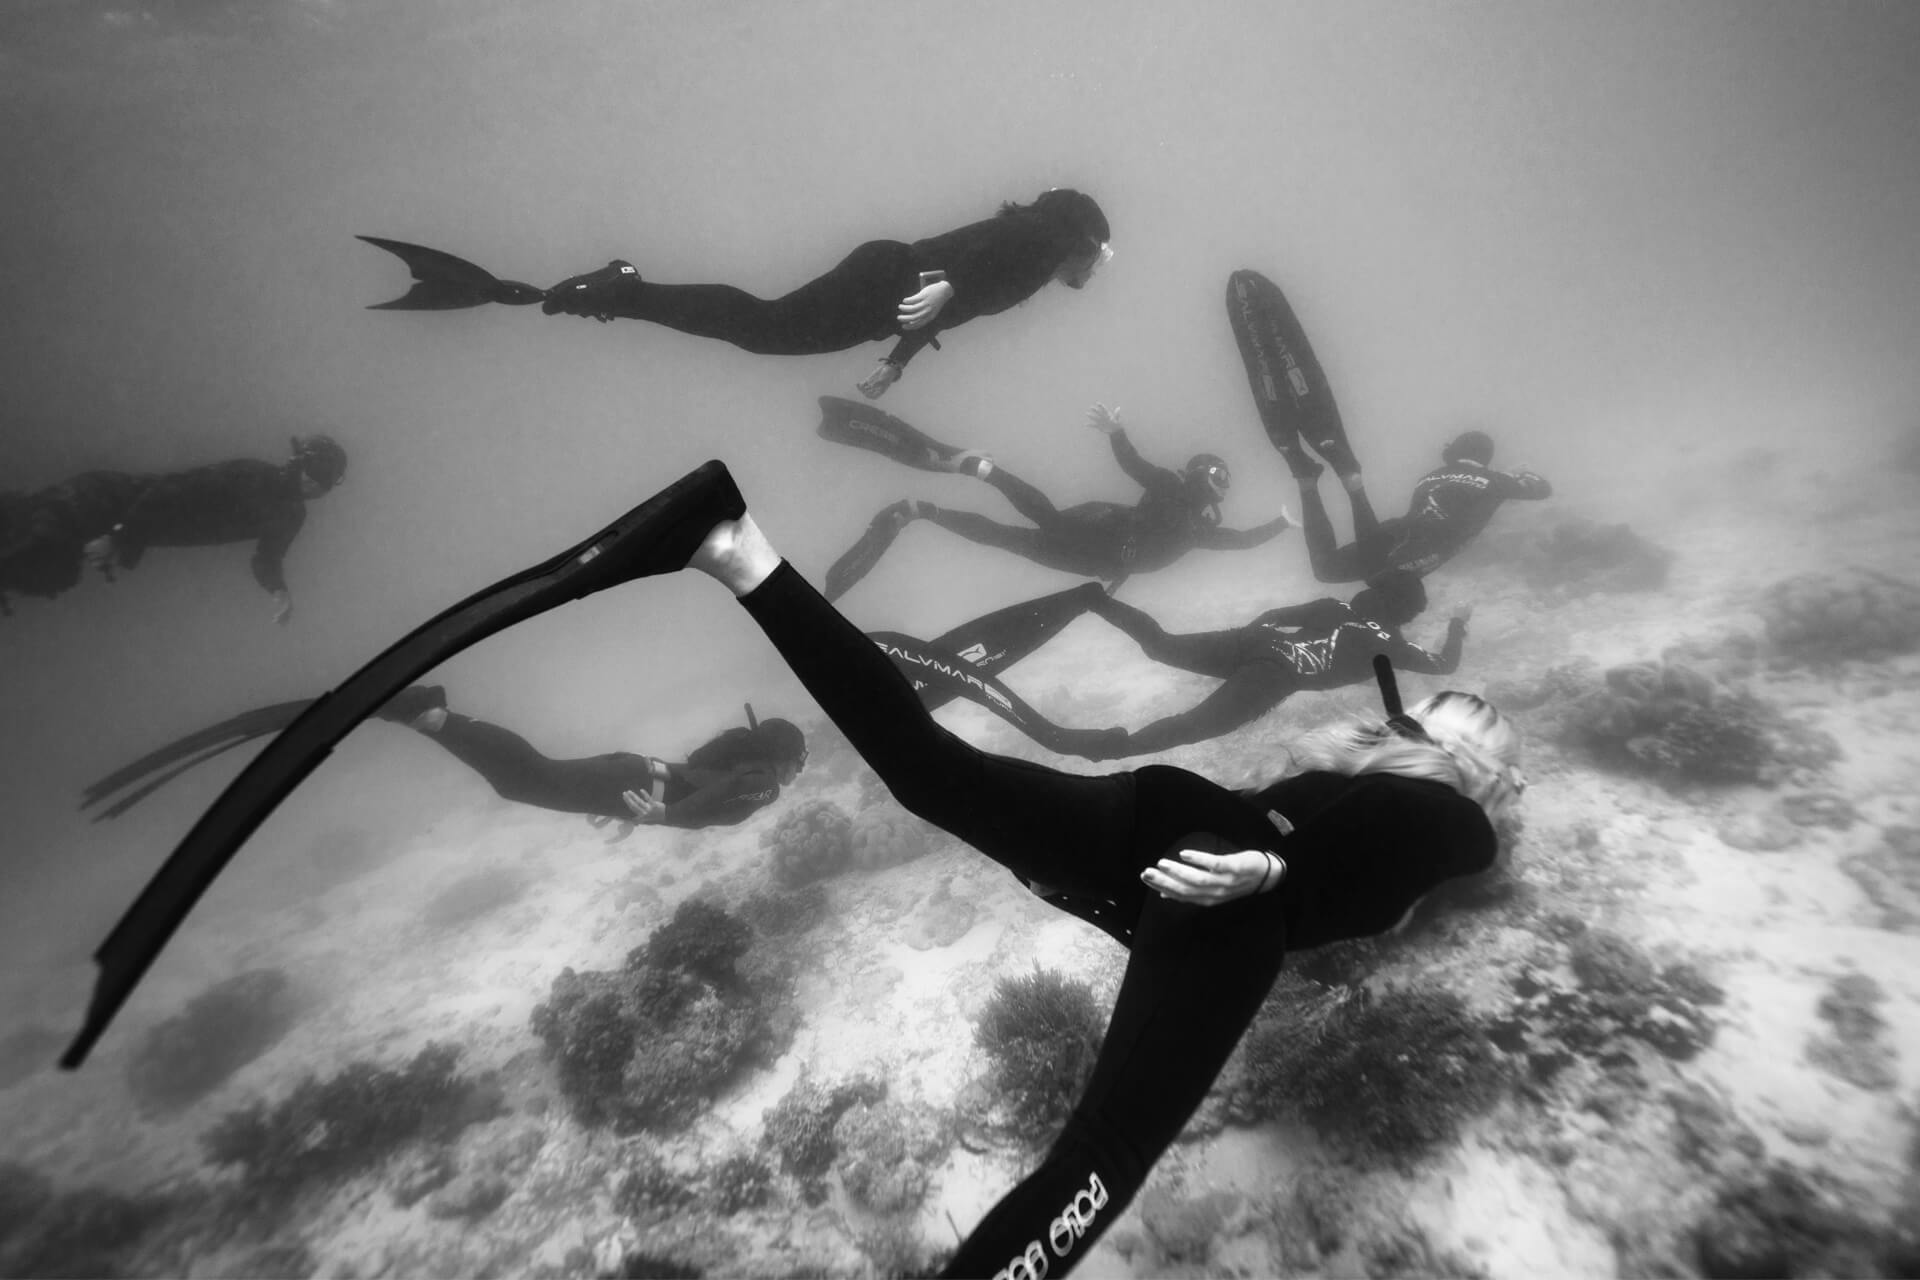 a school of freedivers swimming underwater in black and white